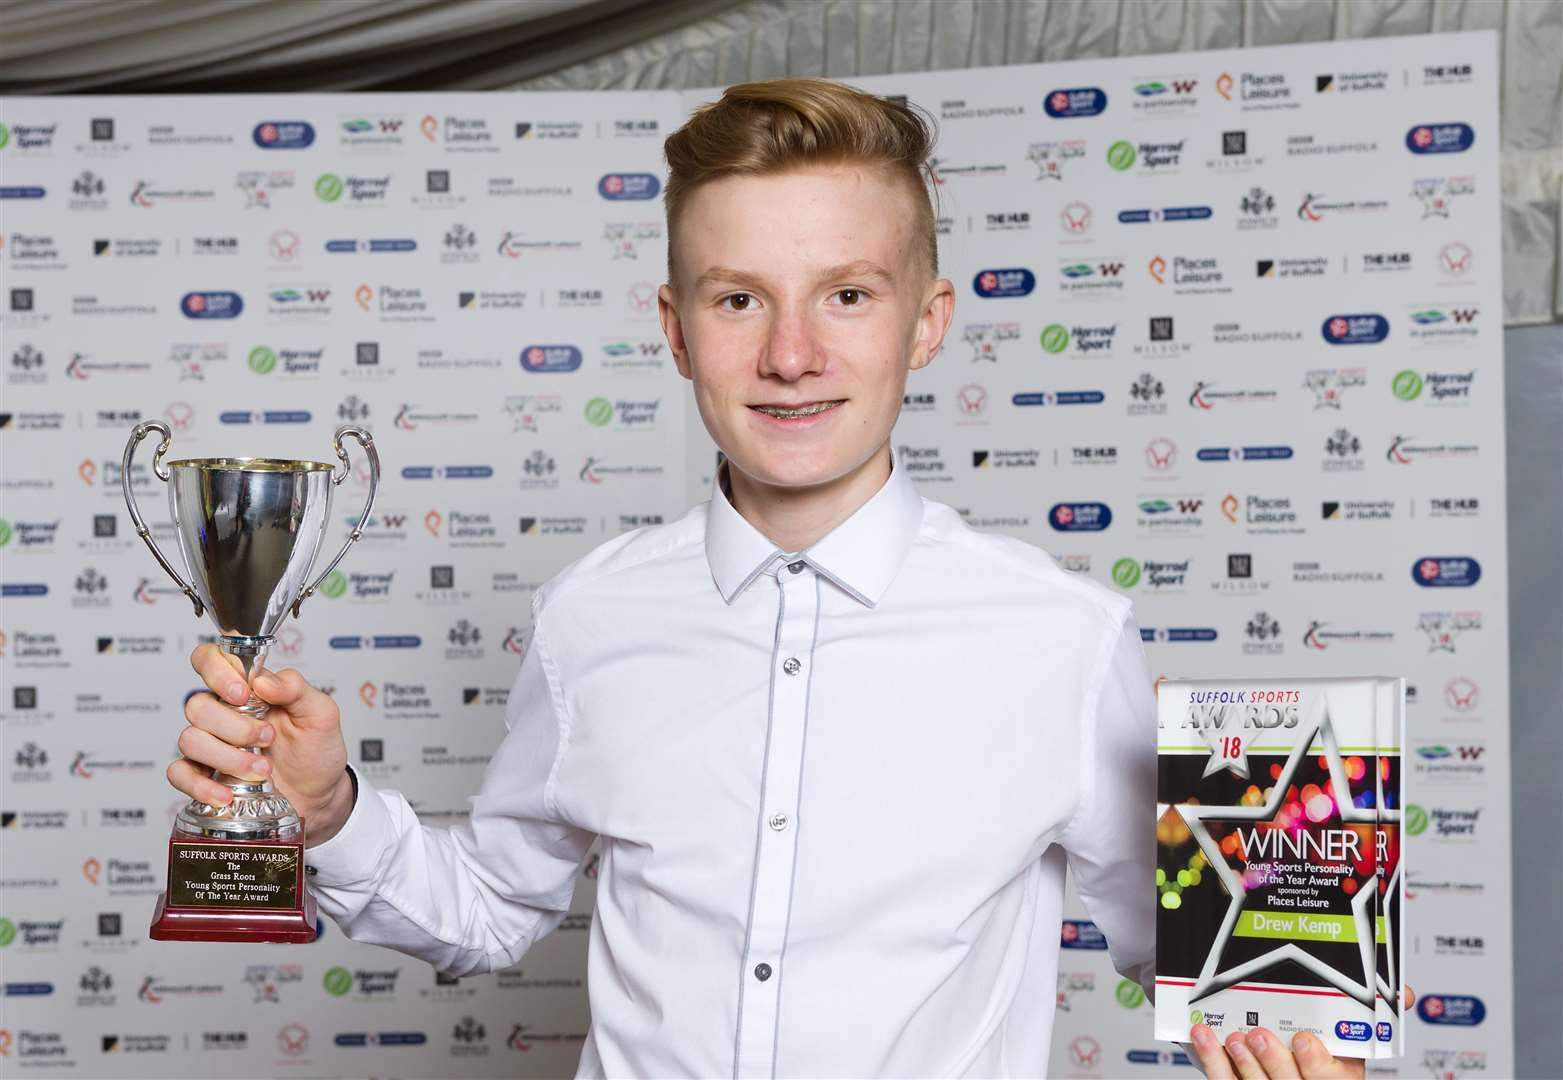 Drew Kemp won Young Personality of the Year award at Suffolk Sports Awards 2018/19 (5565068)